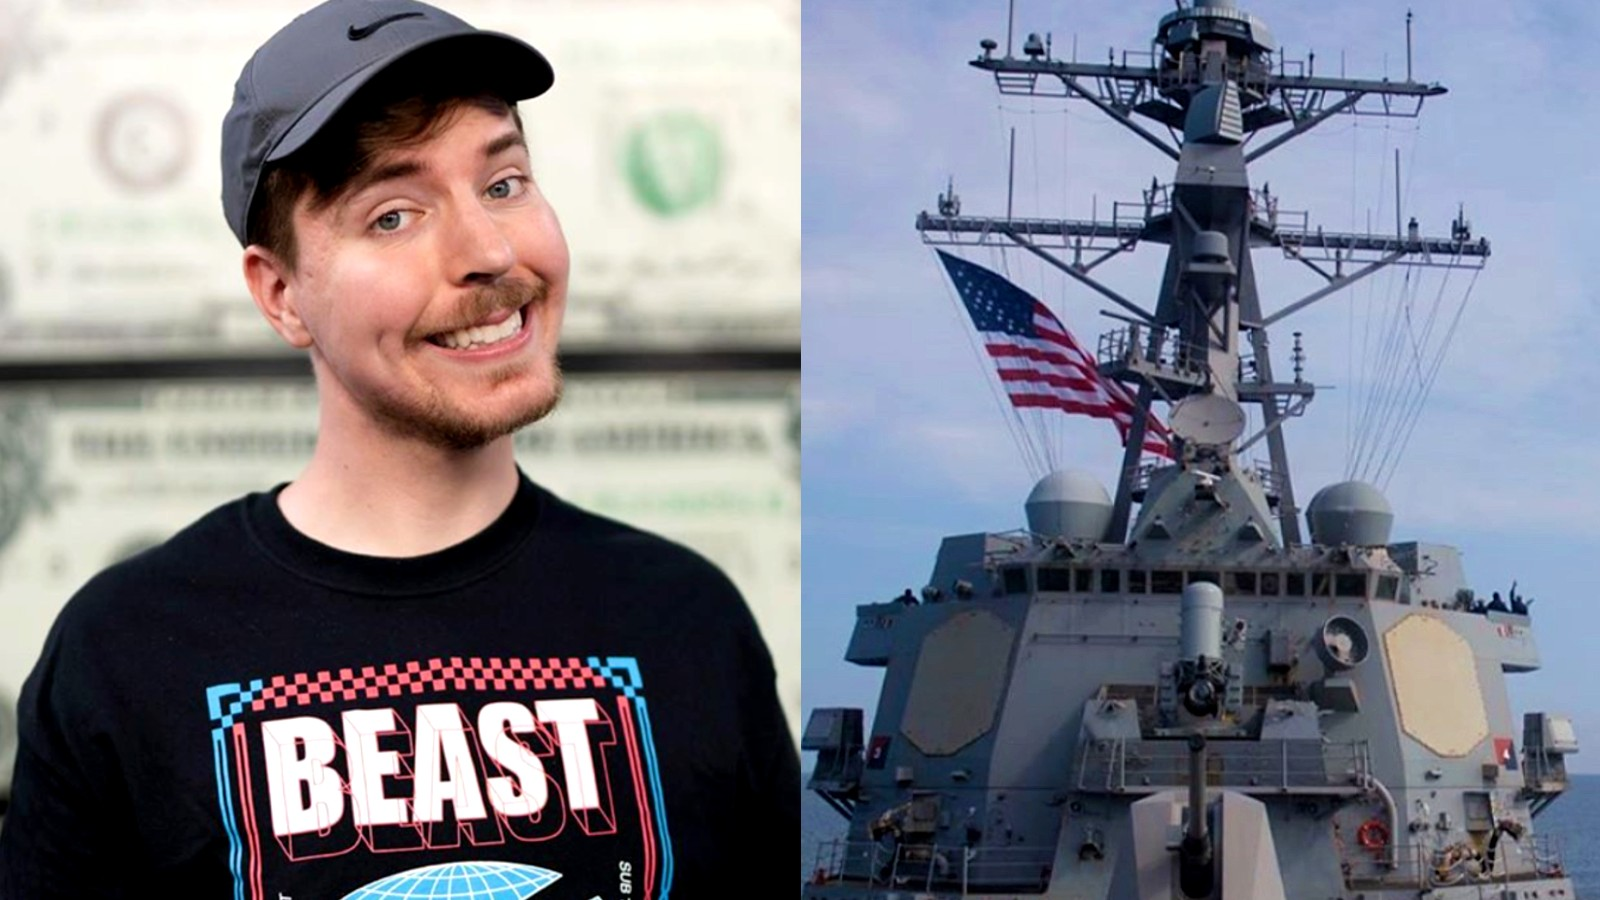 Image of Mr Beast standing next to image of US Navy ship